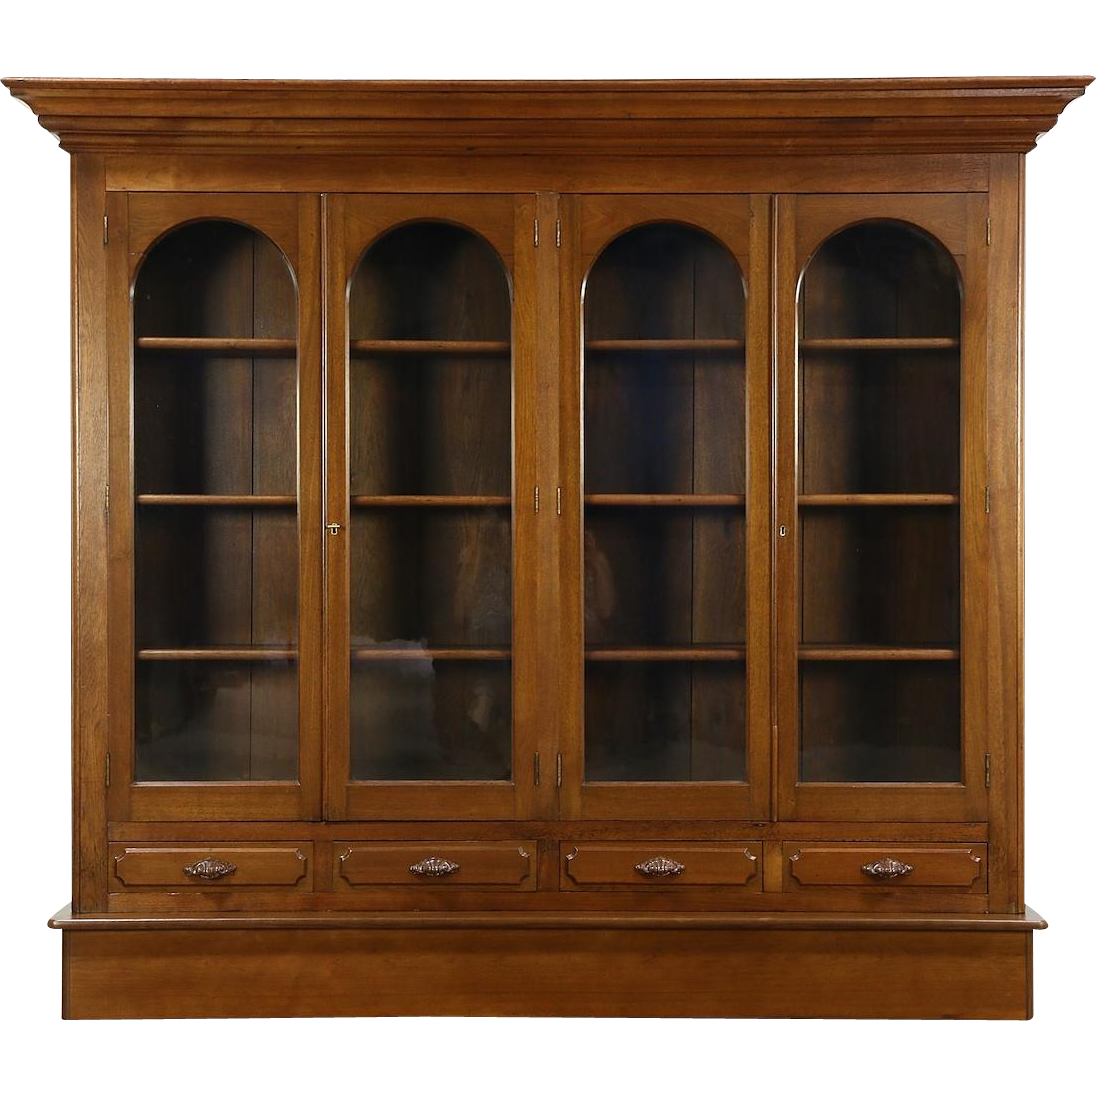 Victorian 1860 Antique Walnut Bookcase, 4 Wavy Glass Arched Doors